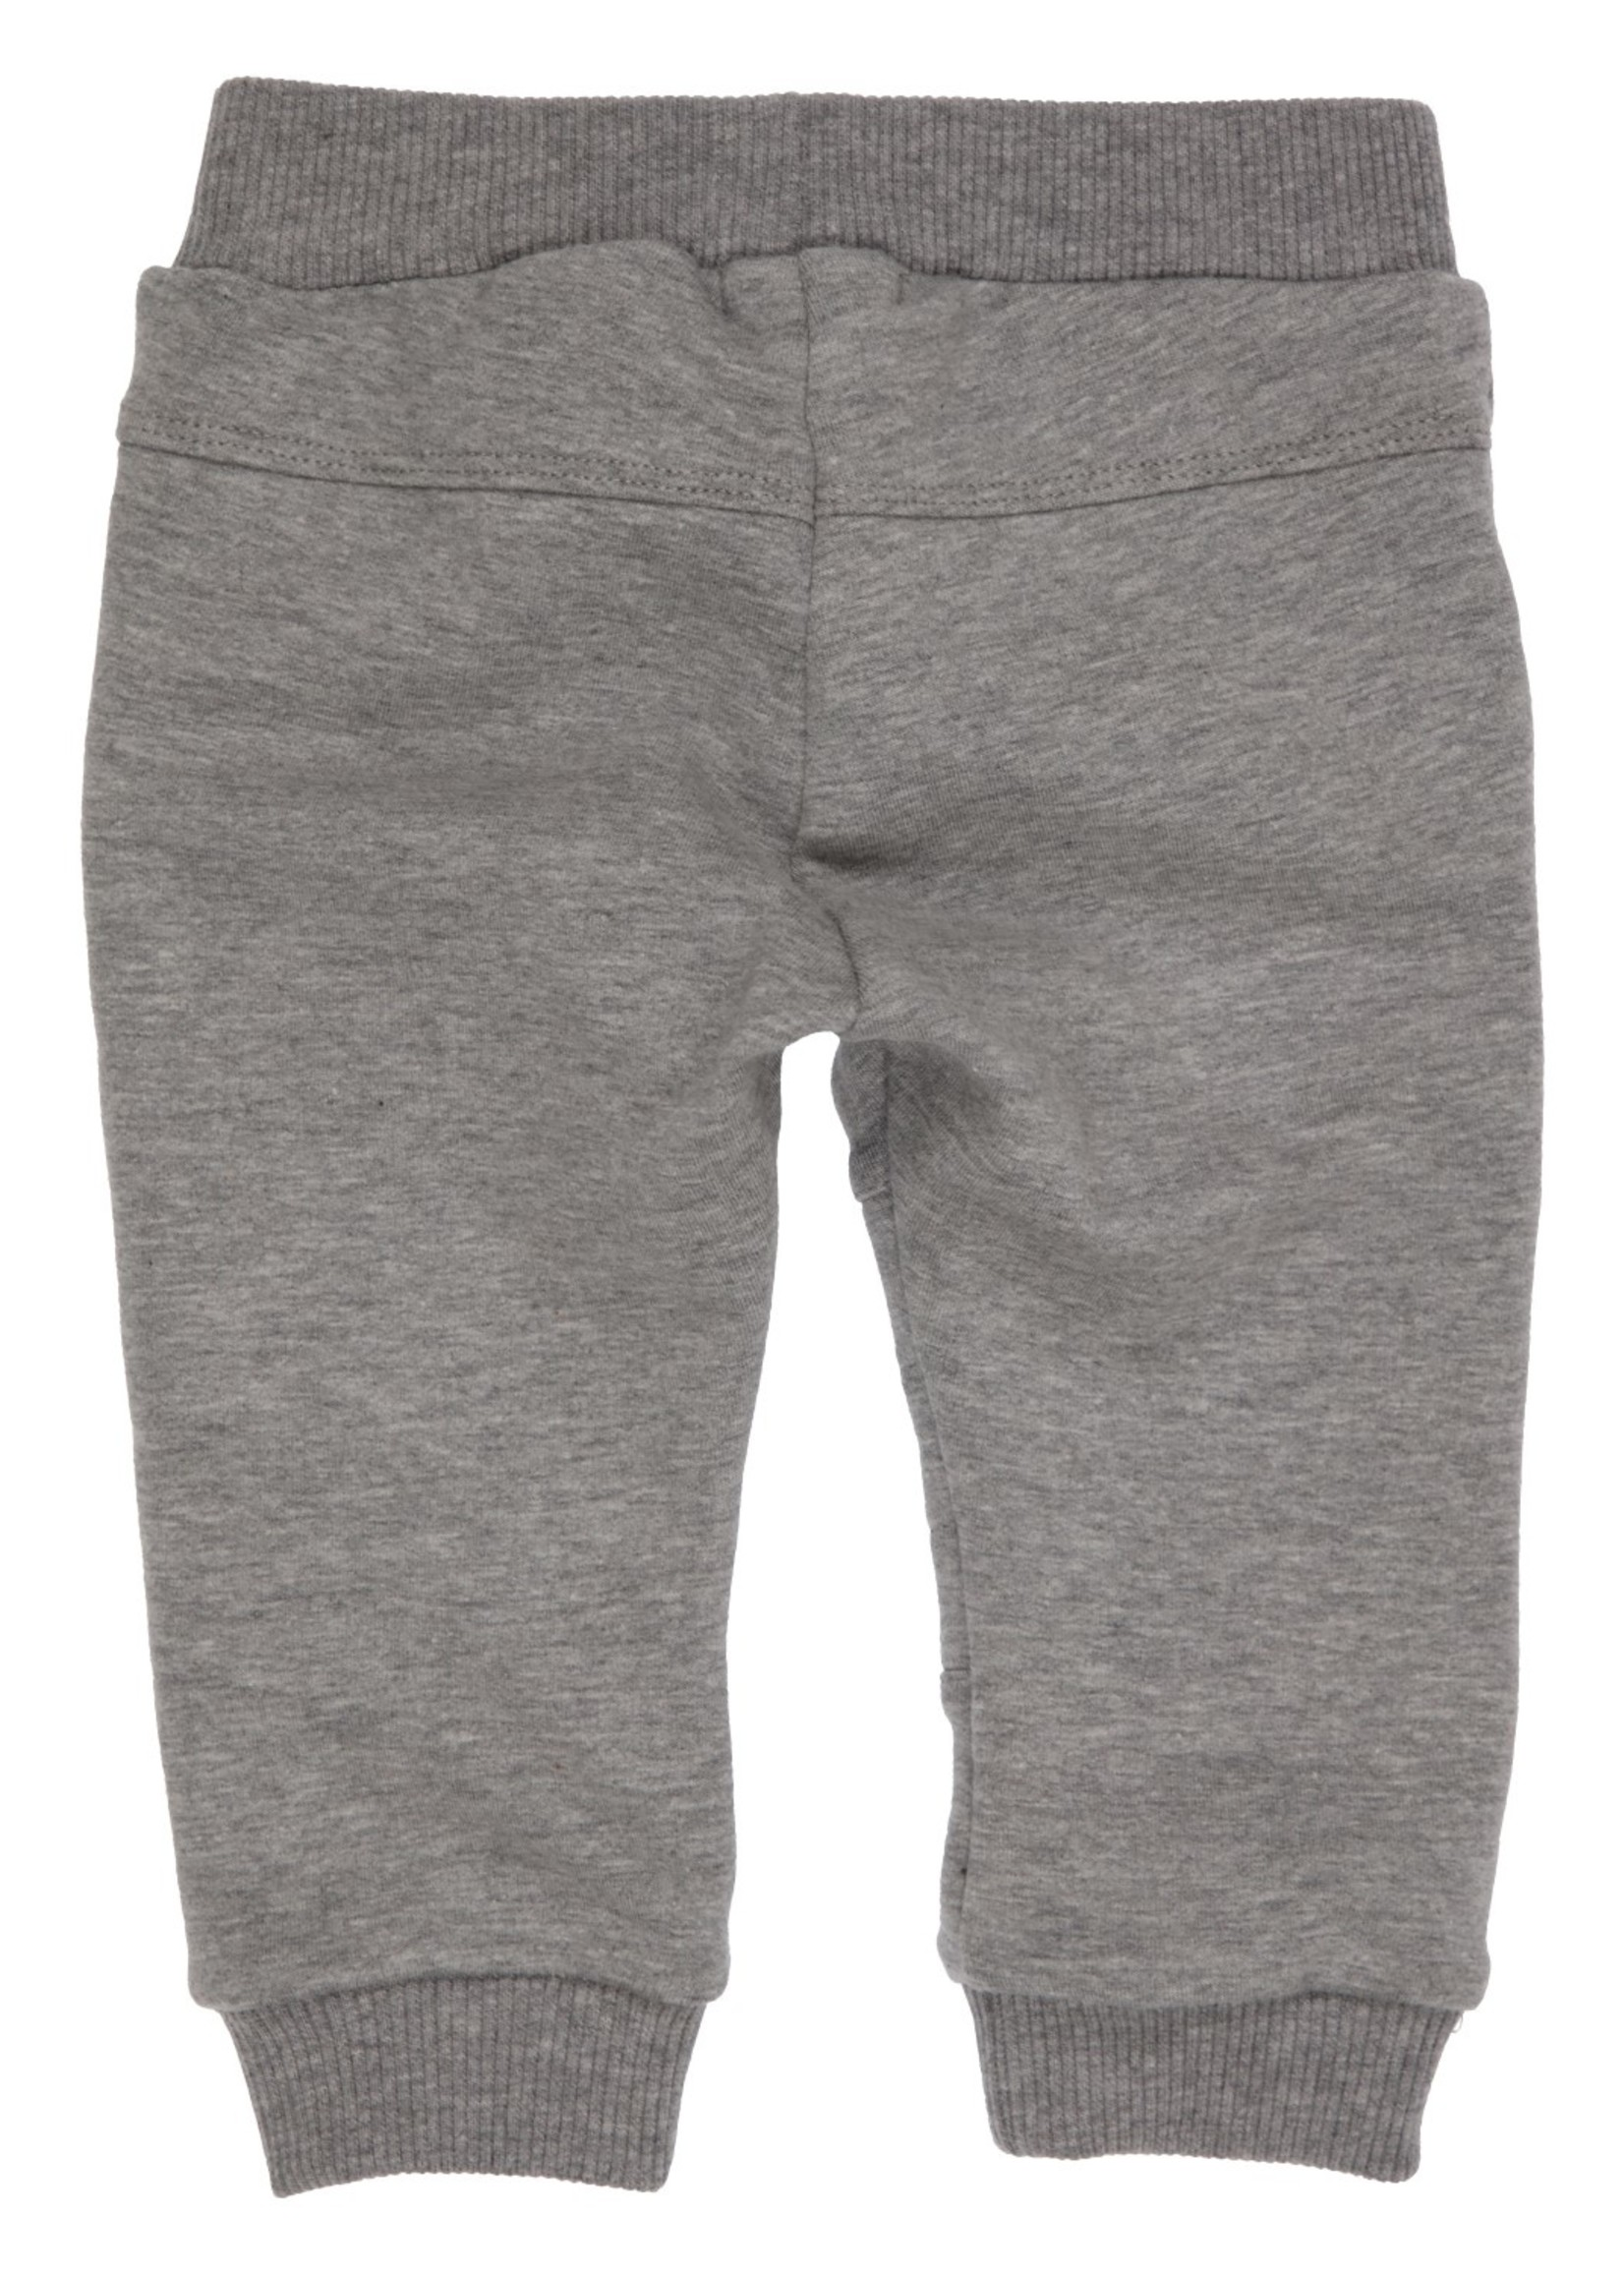 Gymp Gymp pants knee stitching grijs chine